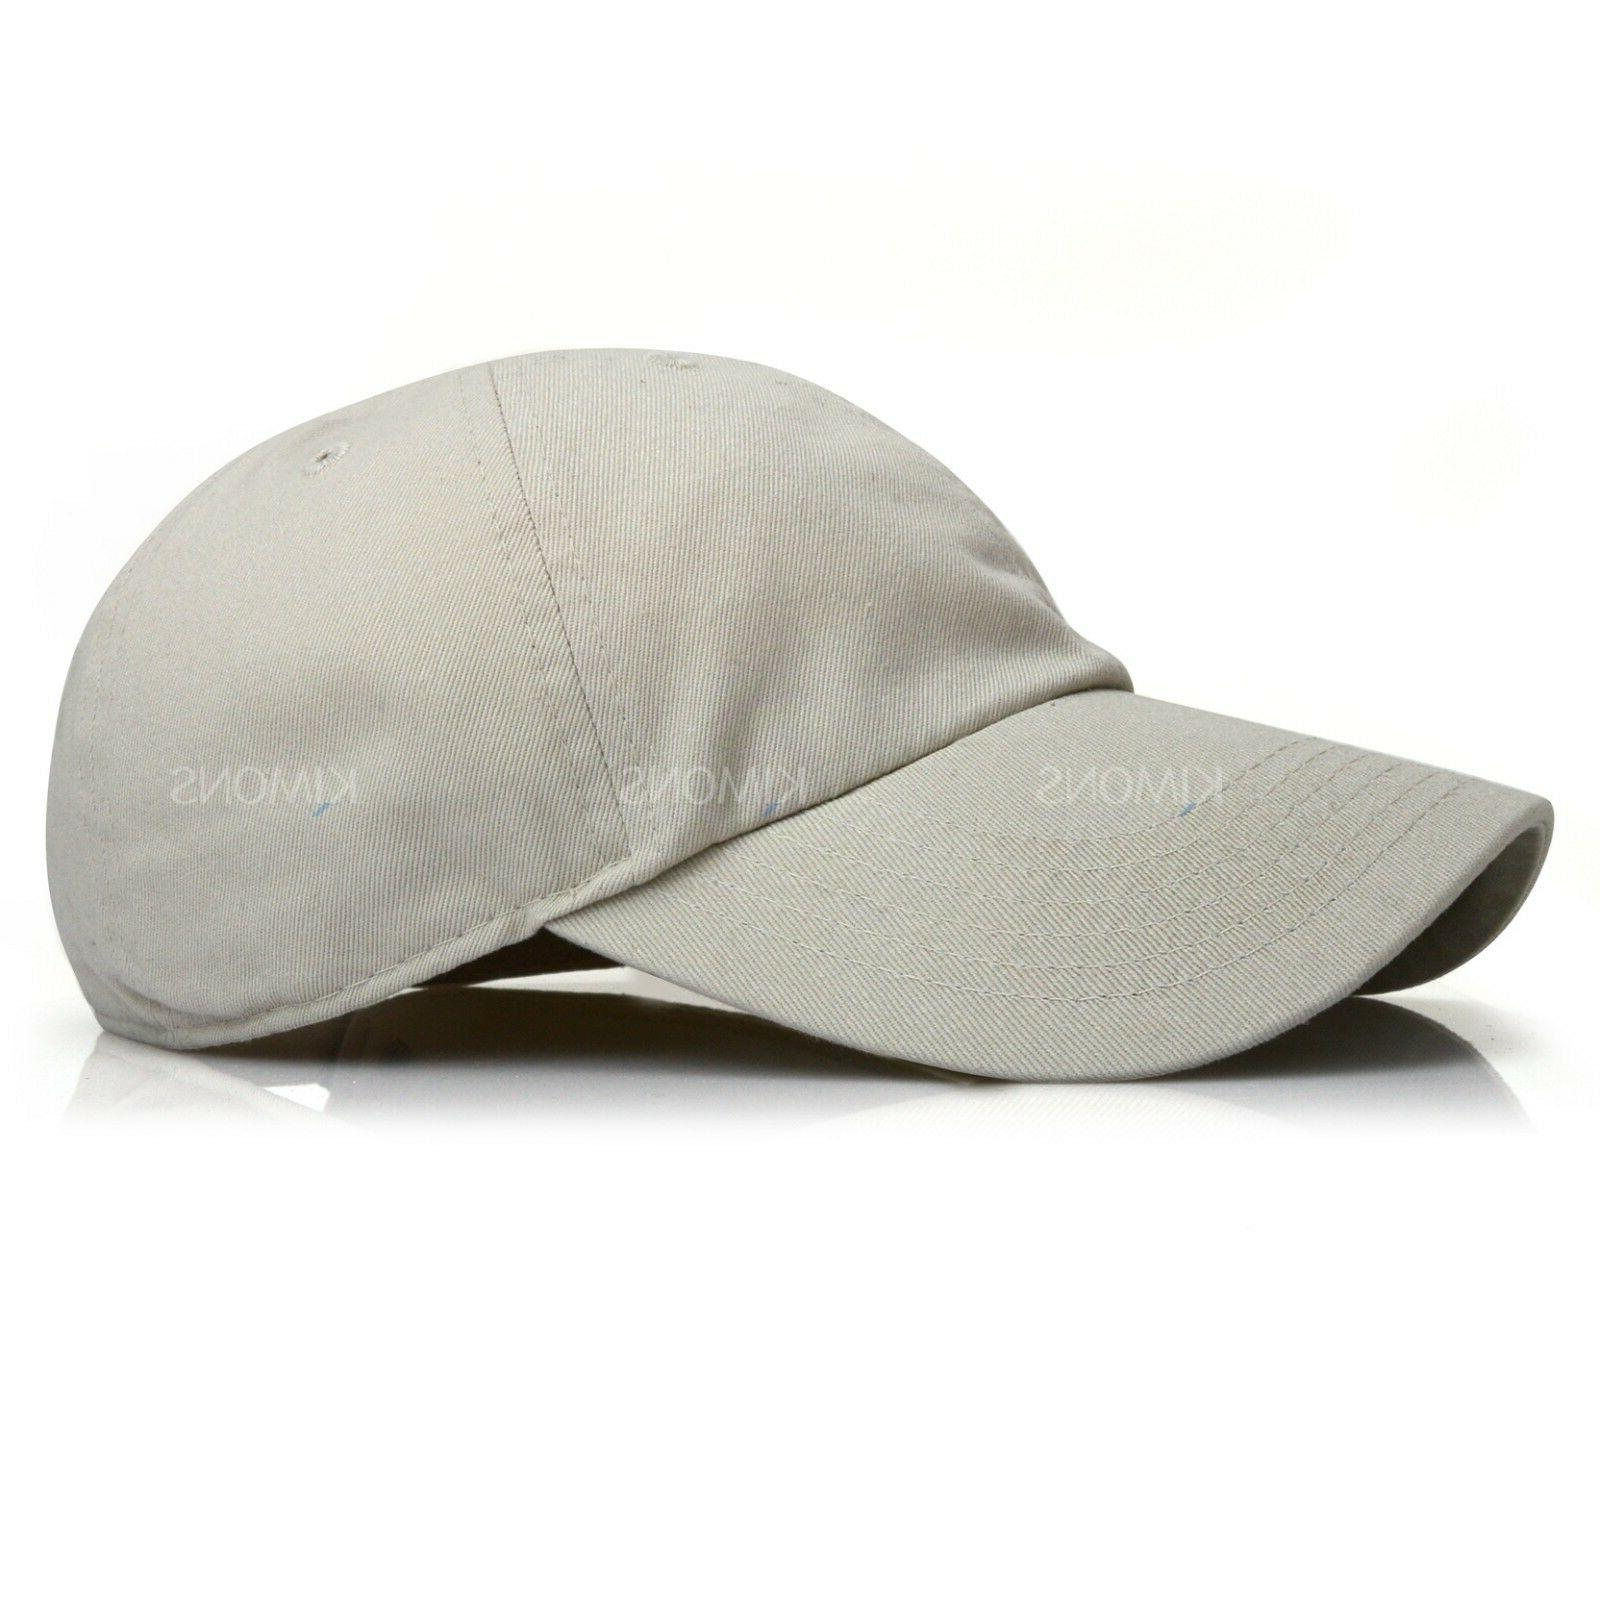 Polo Cotton Cap Adjustable Mens